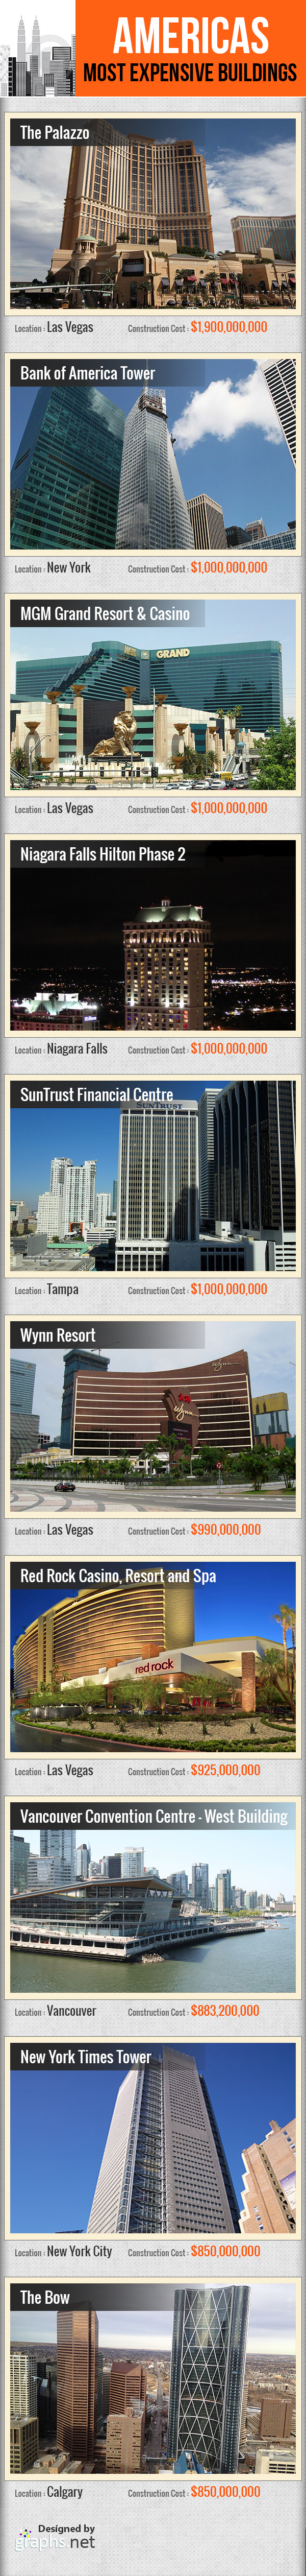 America's Most Expensive Buildings